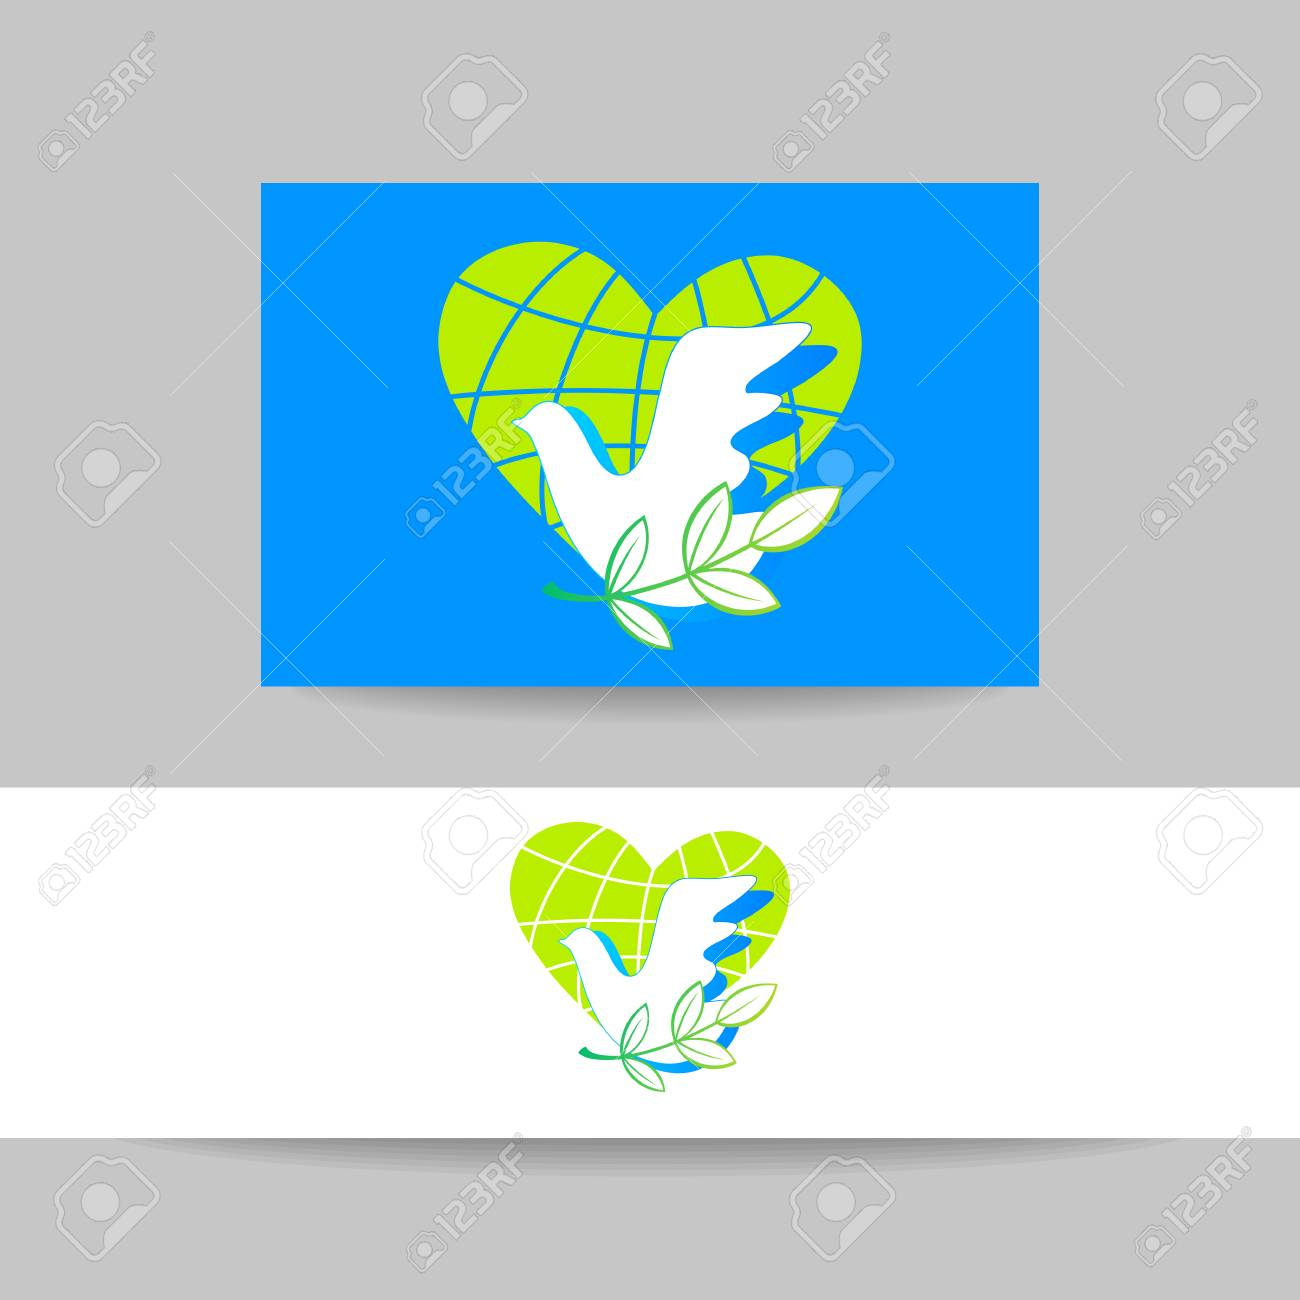 Dove design template white dove peace symbol royalty free dove design template white dove peace symbol stock vector 53449586 biocorpaavc